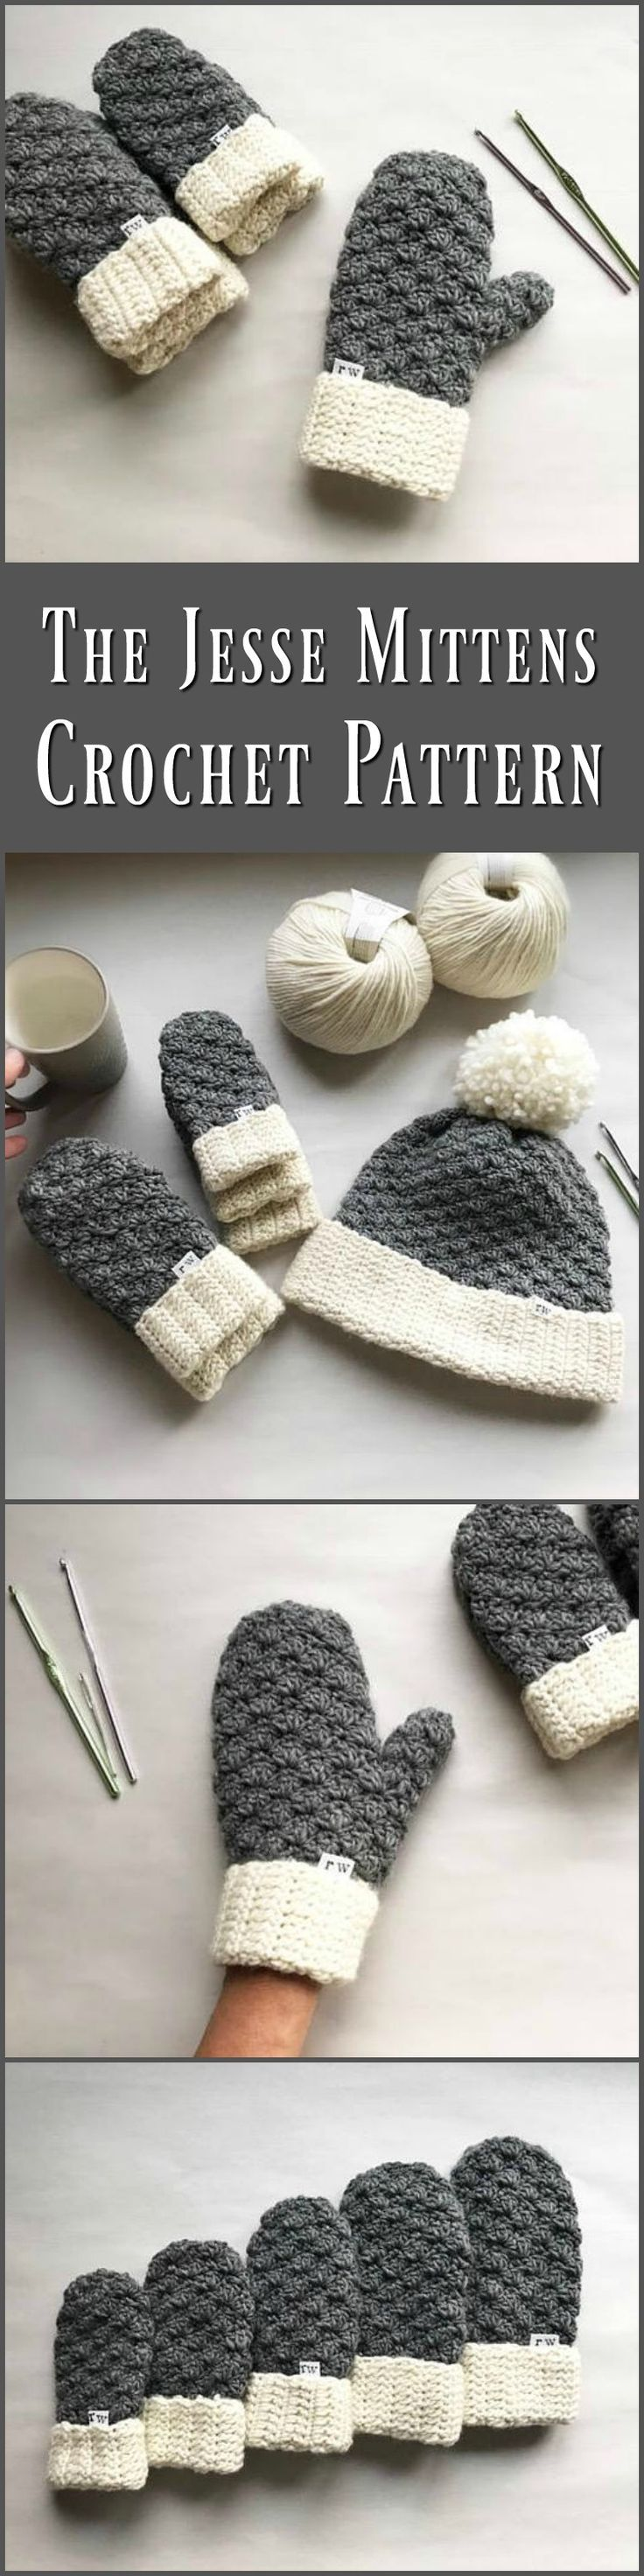 The Jesse Mittens, Crochet Mittens, Easy Pattern, Mitten Pattern, Crochet Mittens, Pattern, Crochet #download ochet #ad #crochetpattern  #download